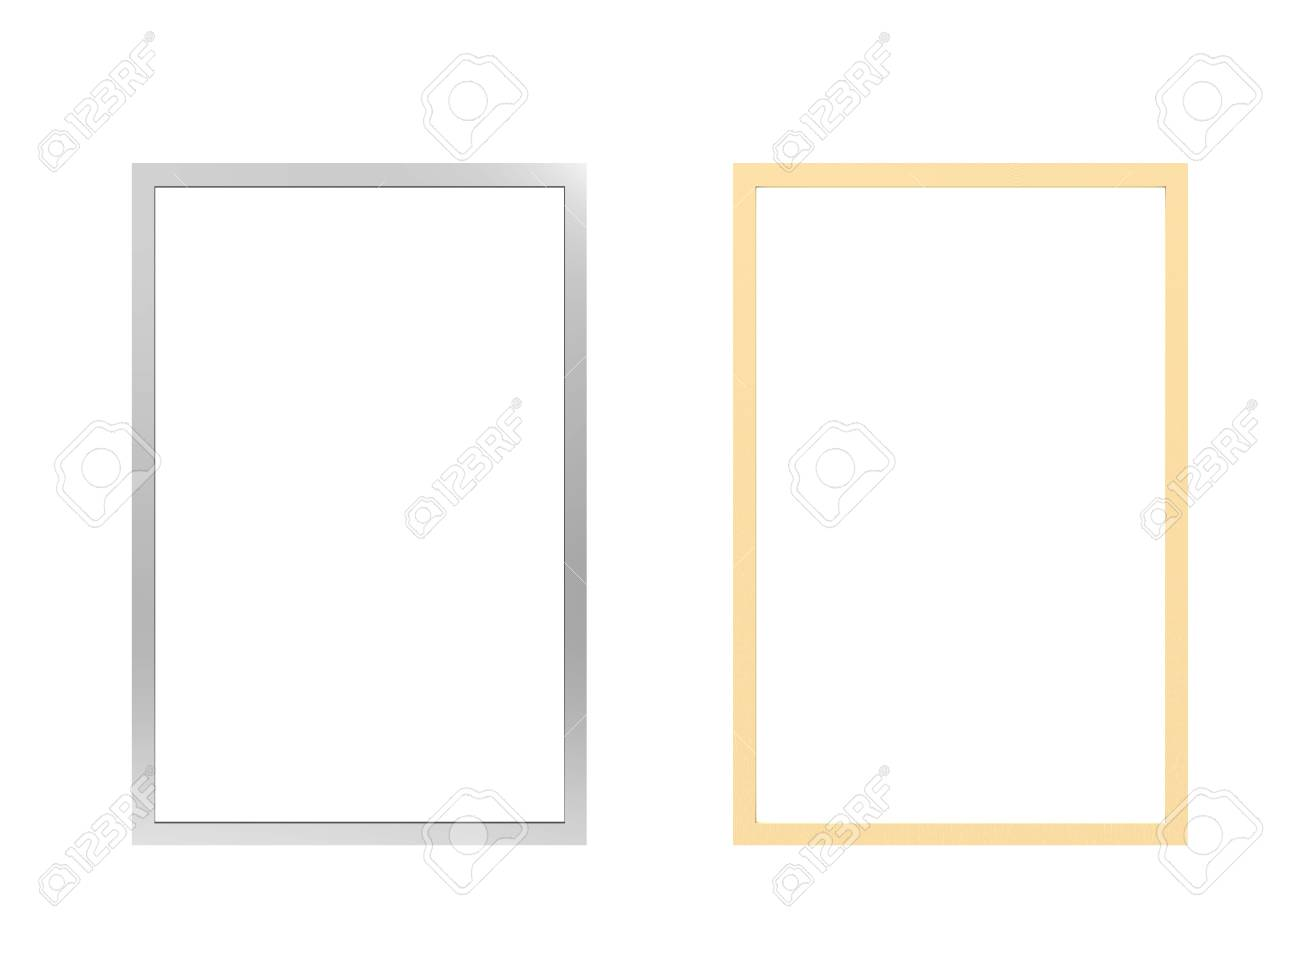 eaab19c1ac0 silver and golden photo frames isolated on white Stock Photo - 65602901